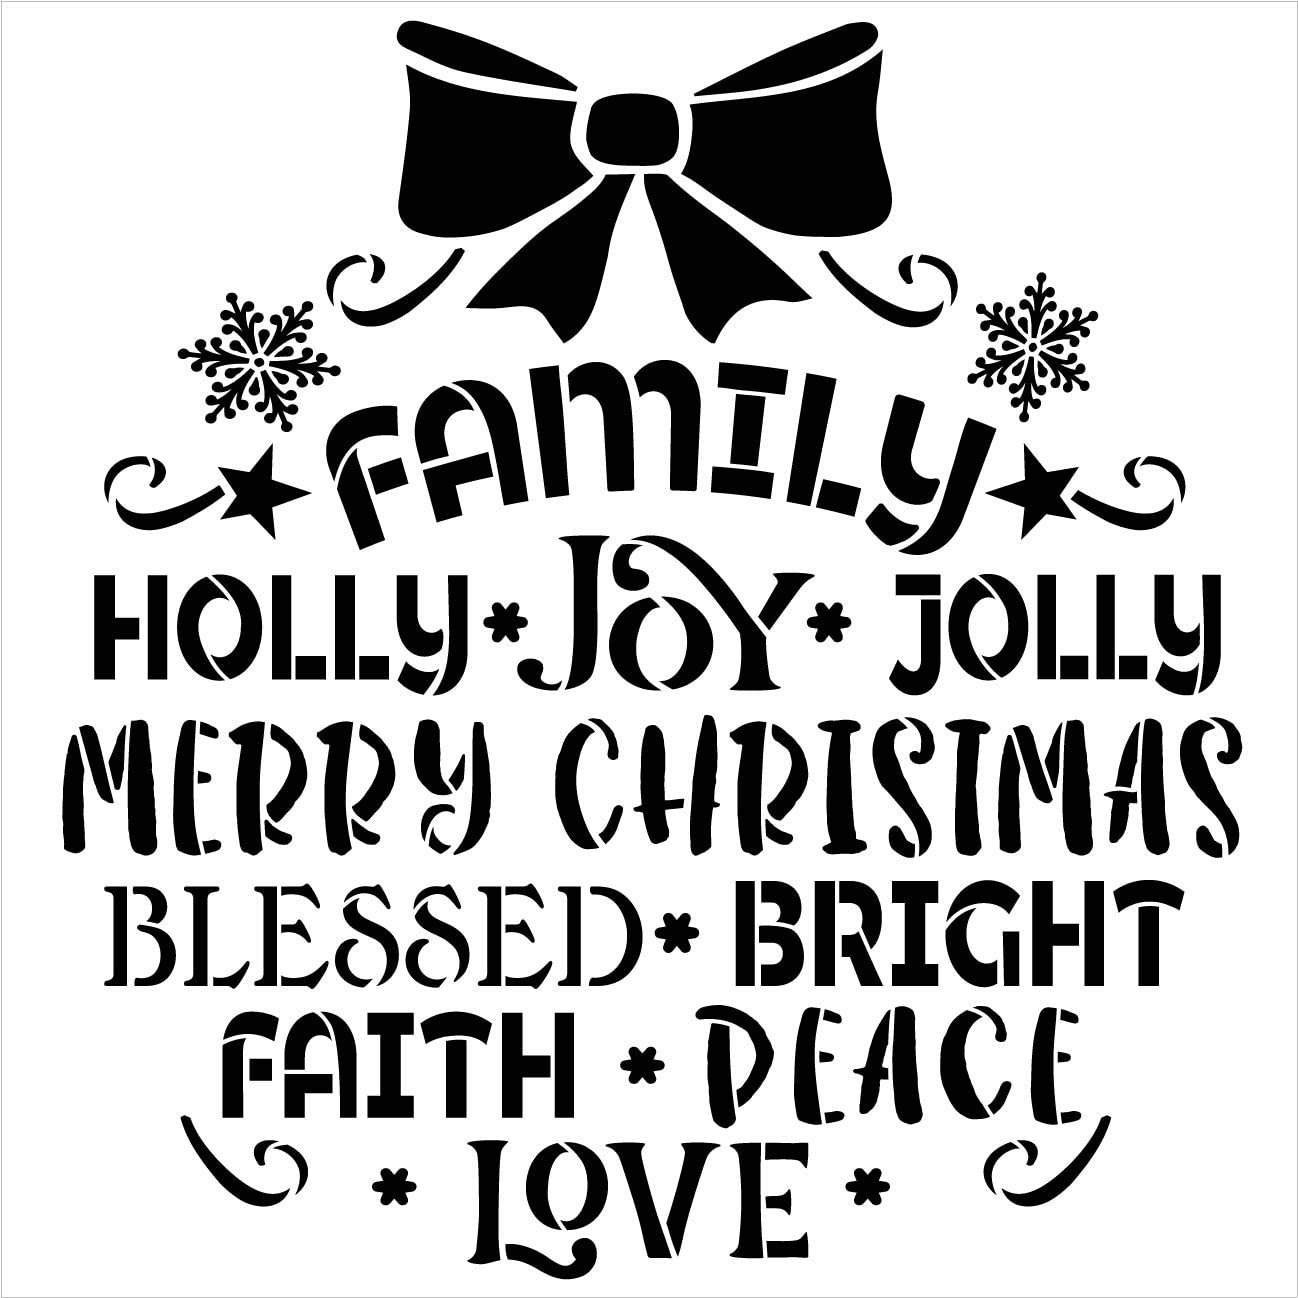 Family Christmas Ornament Word Art Stencil by StudioR12   DIY Holiday Hope Love Home Decor   Craft & Paint Wood Sign   Reusable Mylar Template   Holly Jolly Gift   Select Size